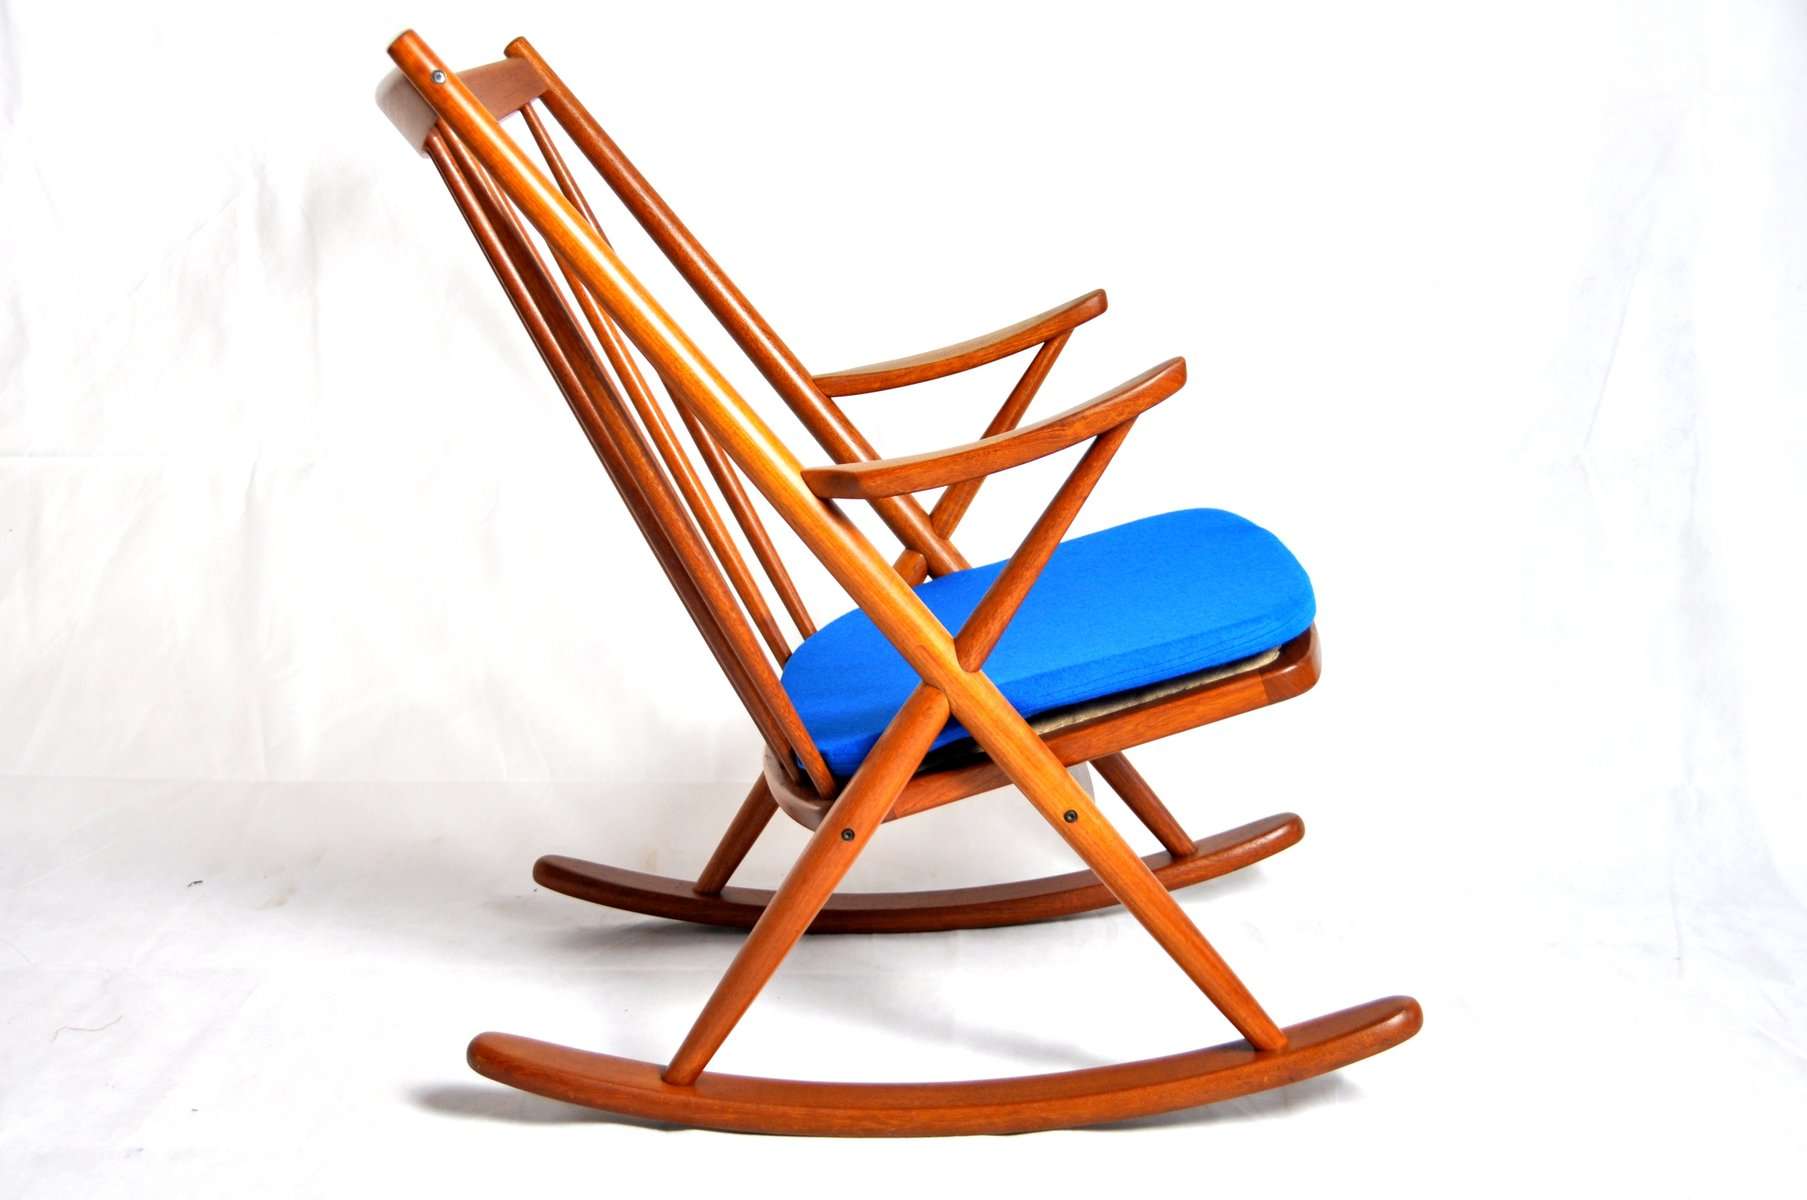 Frank reenskaug rocking chair - Rocking Chair 182 By Frank Reenskaug For Bramin M Bler For Sale At Pamono